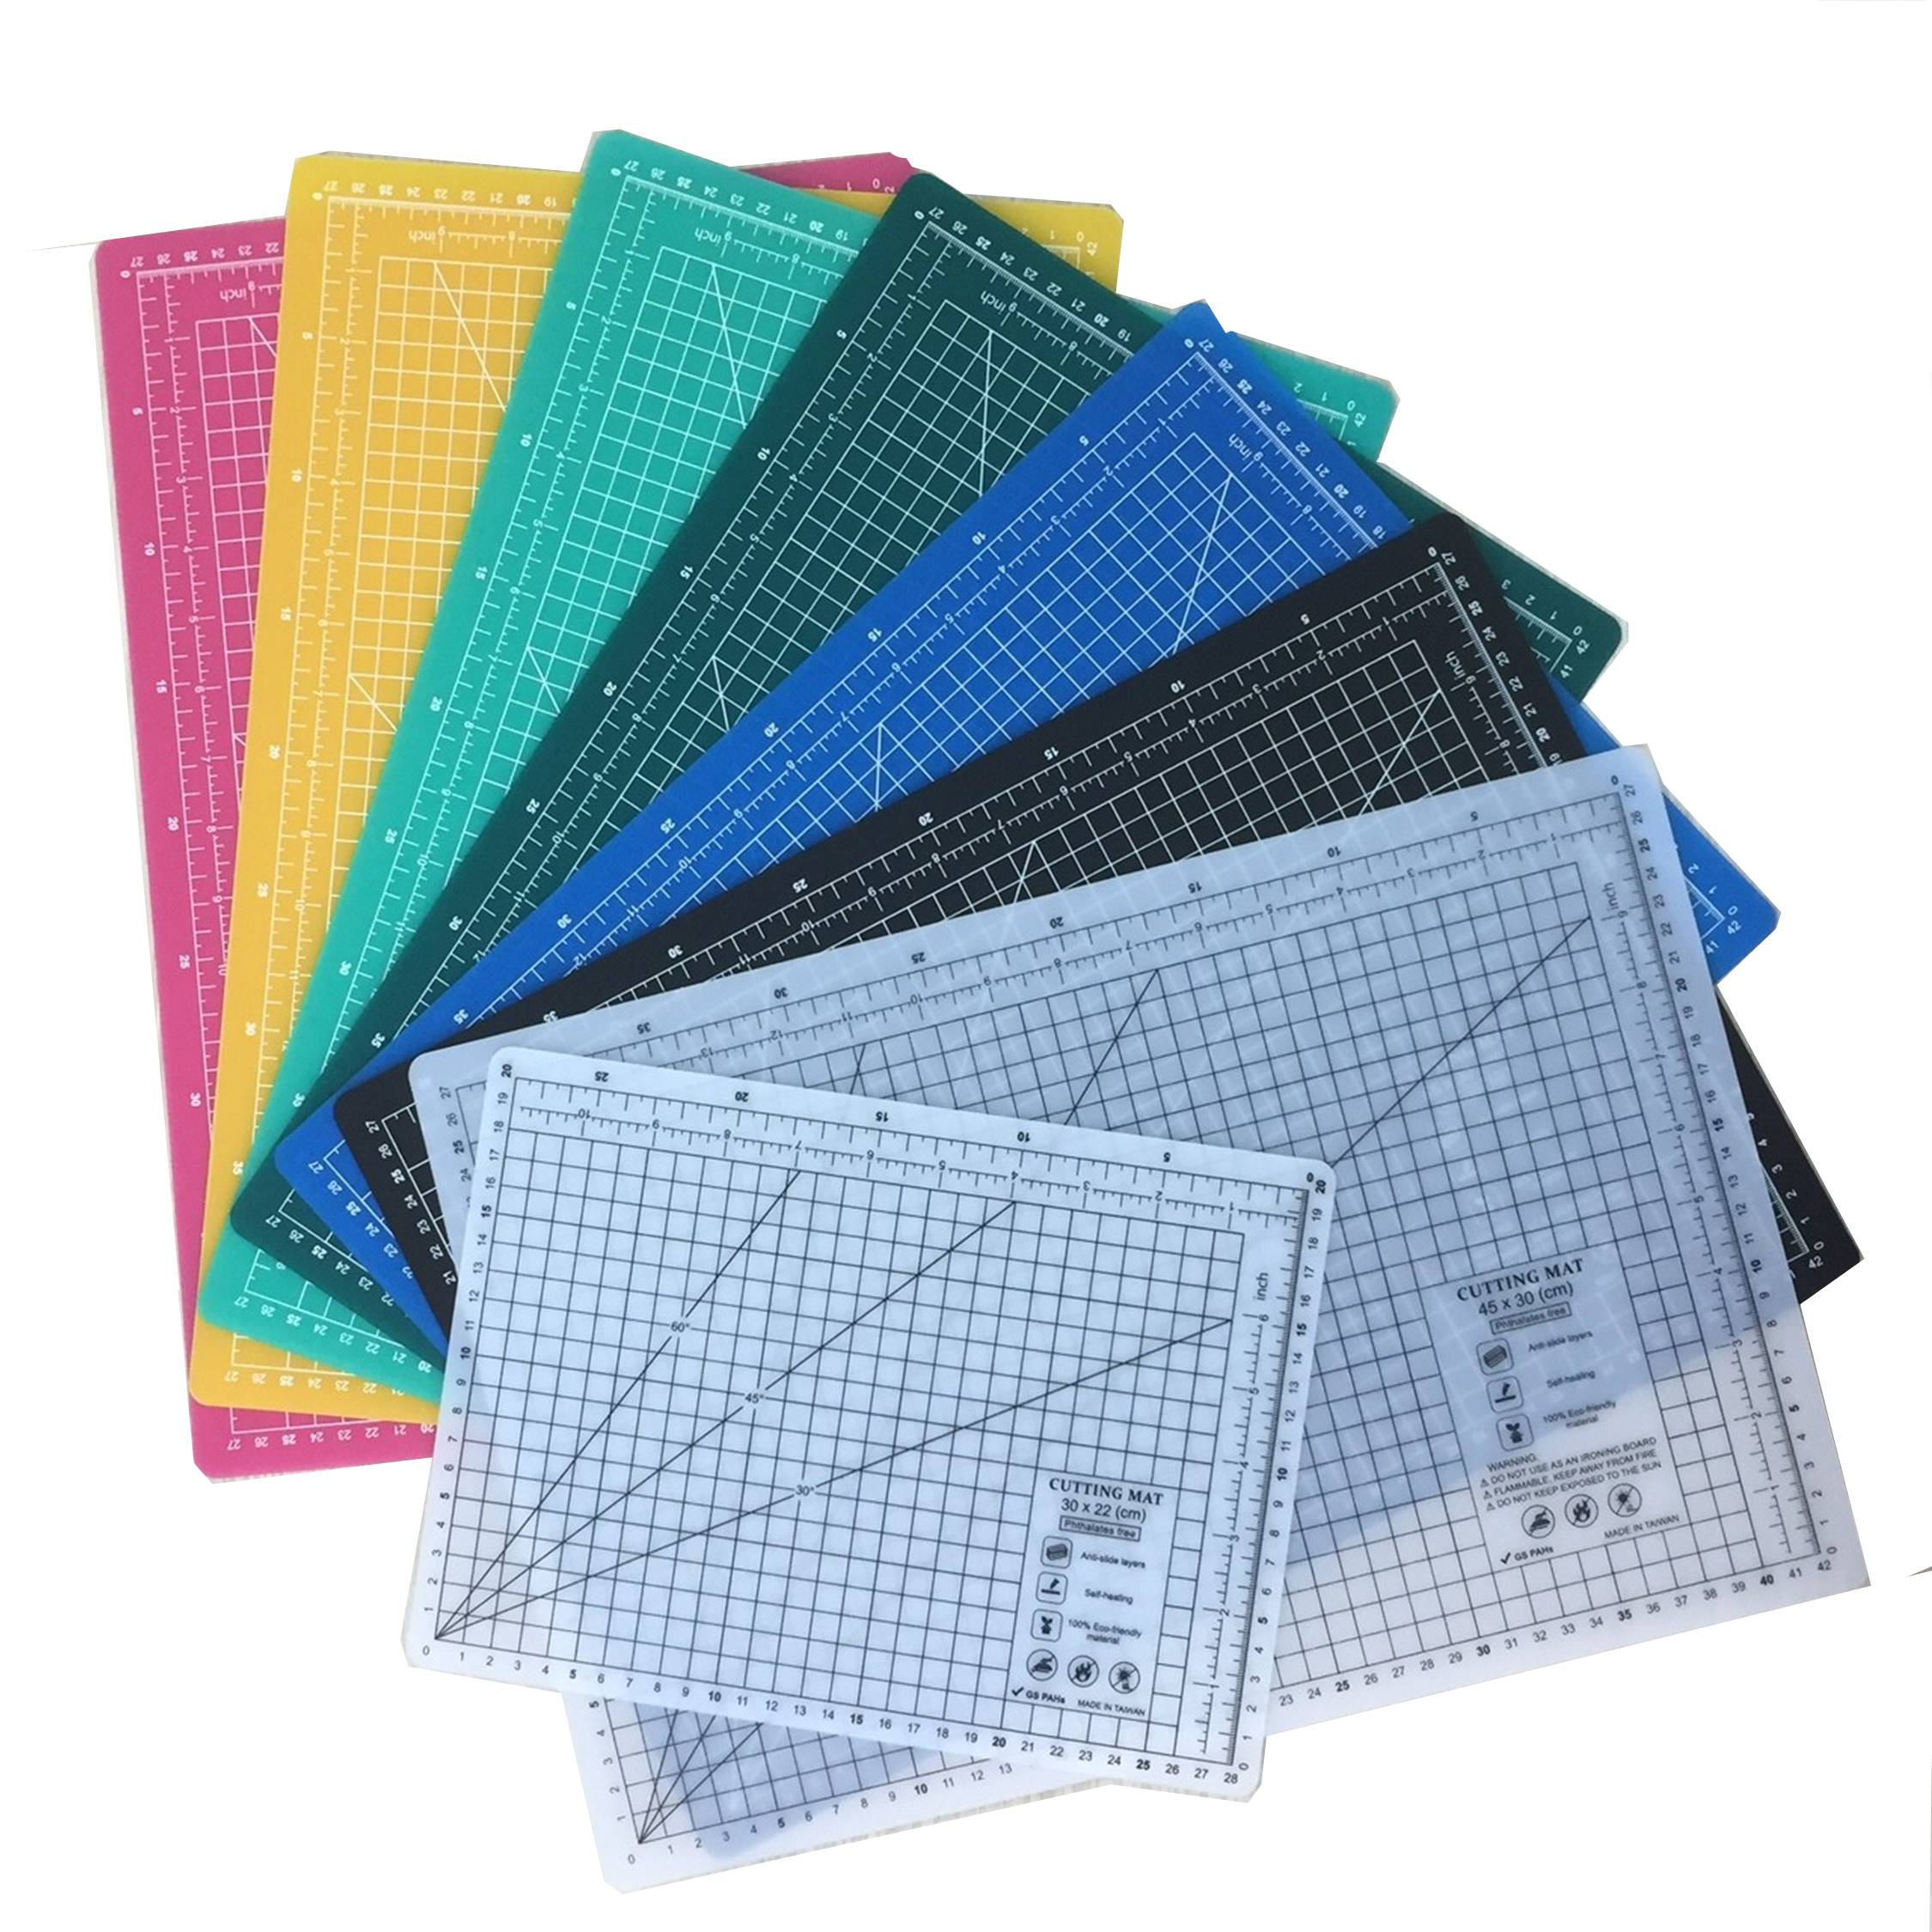 2.0 Mm Eco Friendly Cutting Mat Thinner Budget Option A1 A2 A3 A4 Size